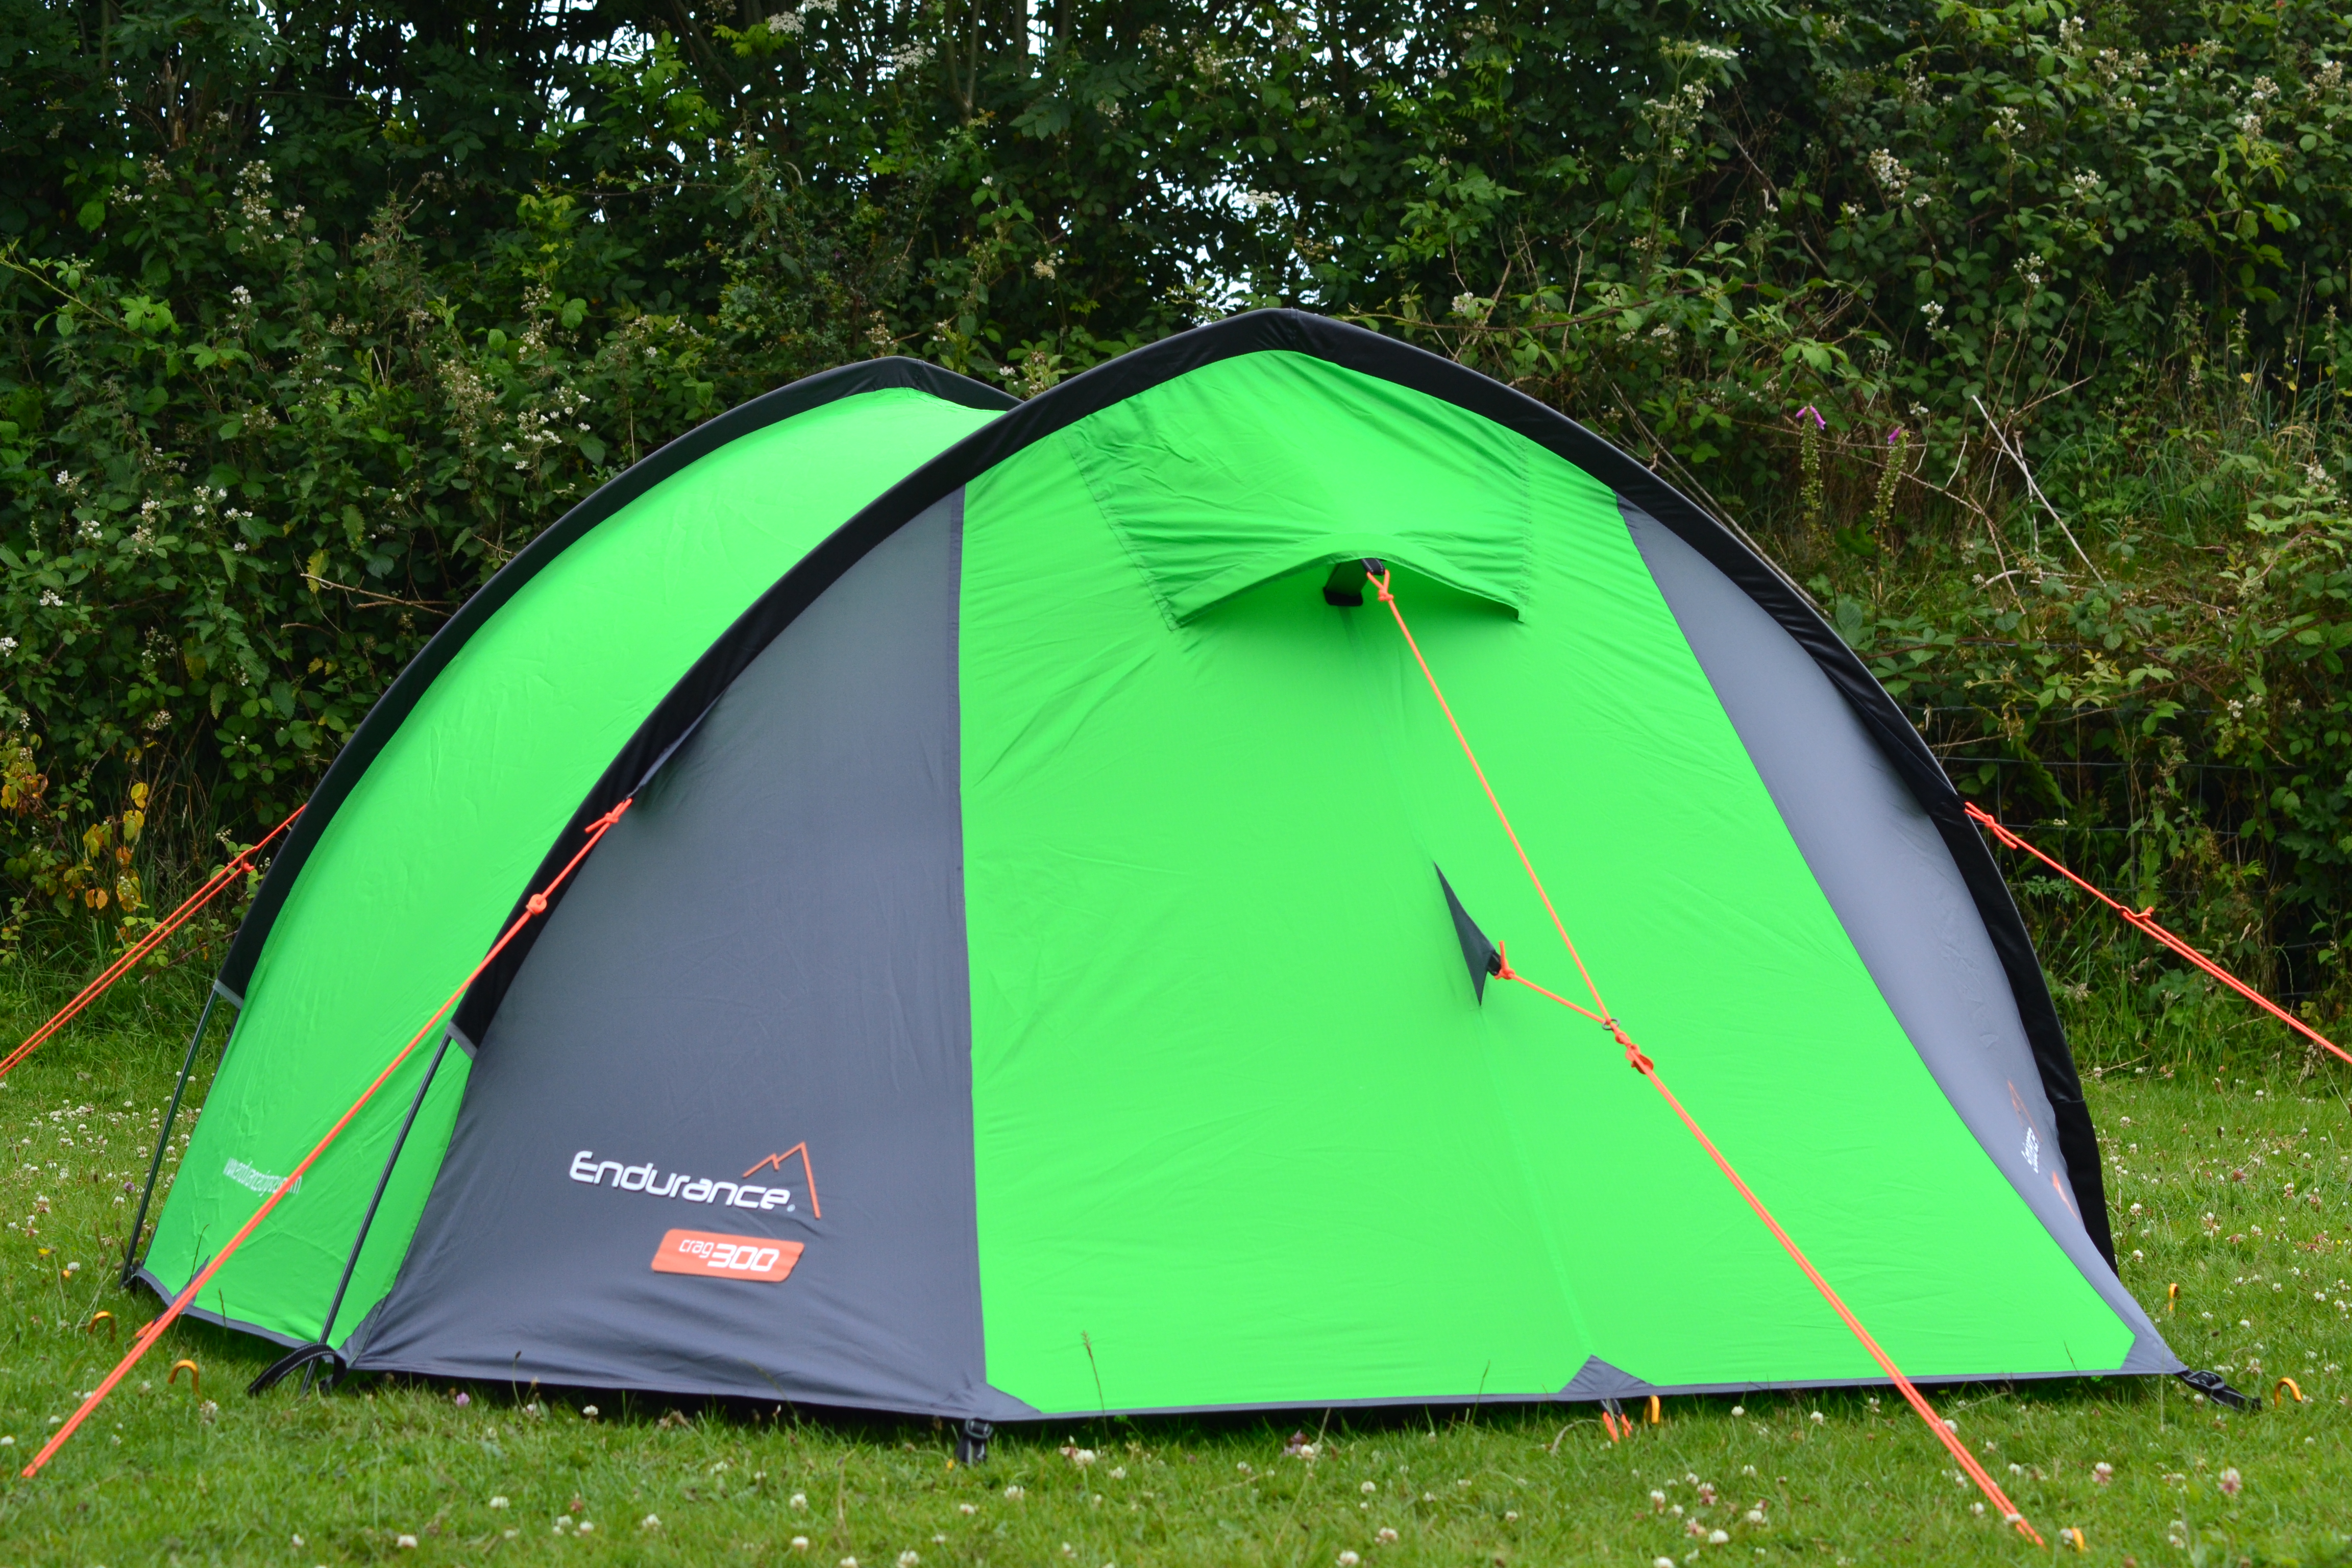 New DofE Expedition Crag Tents Review & New DofE Expedition Crag Tents Review - JC Adventures